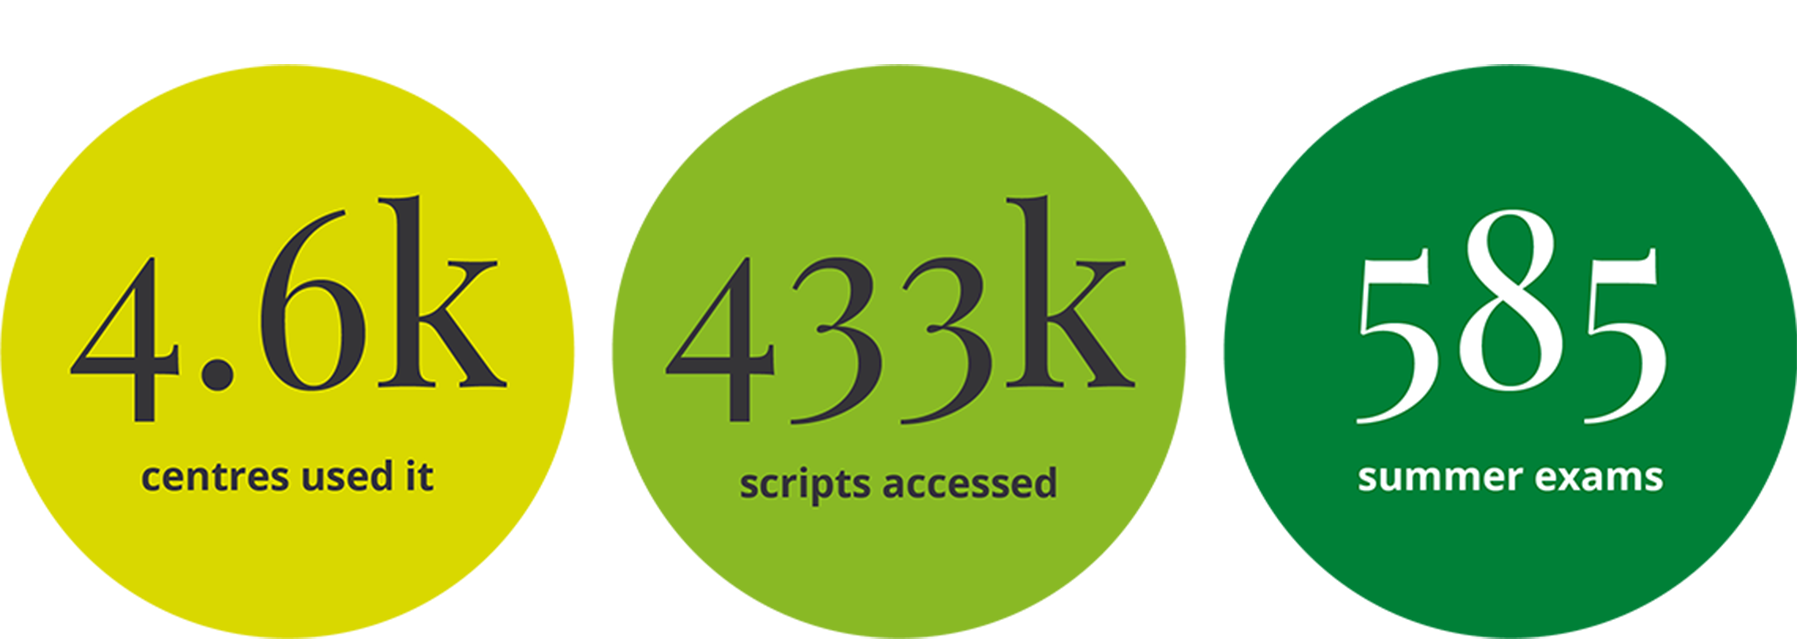 Access to scripts in numbers summer 2018